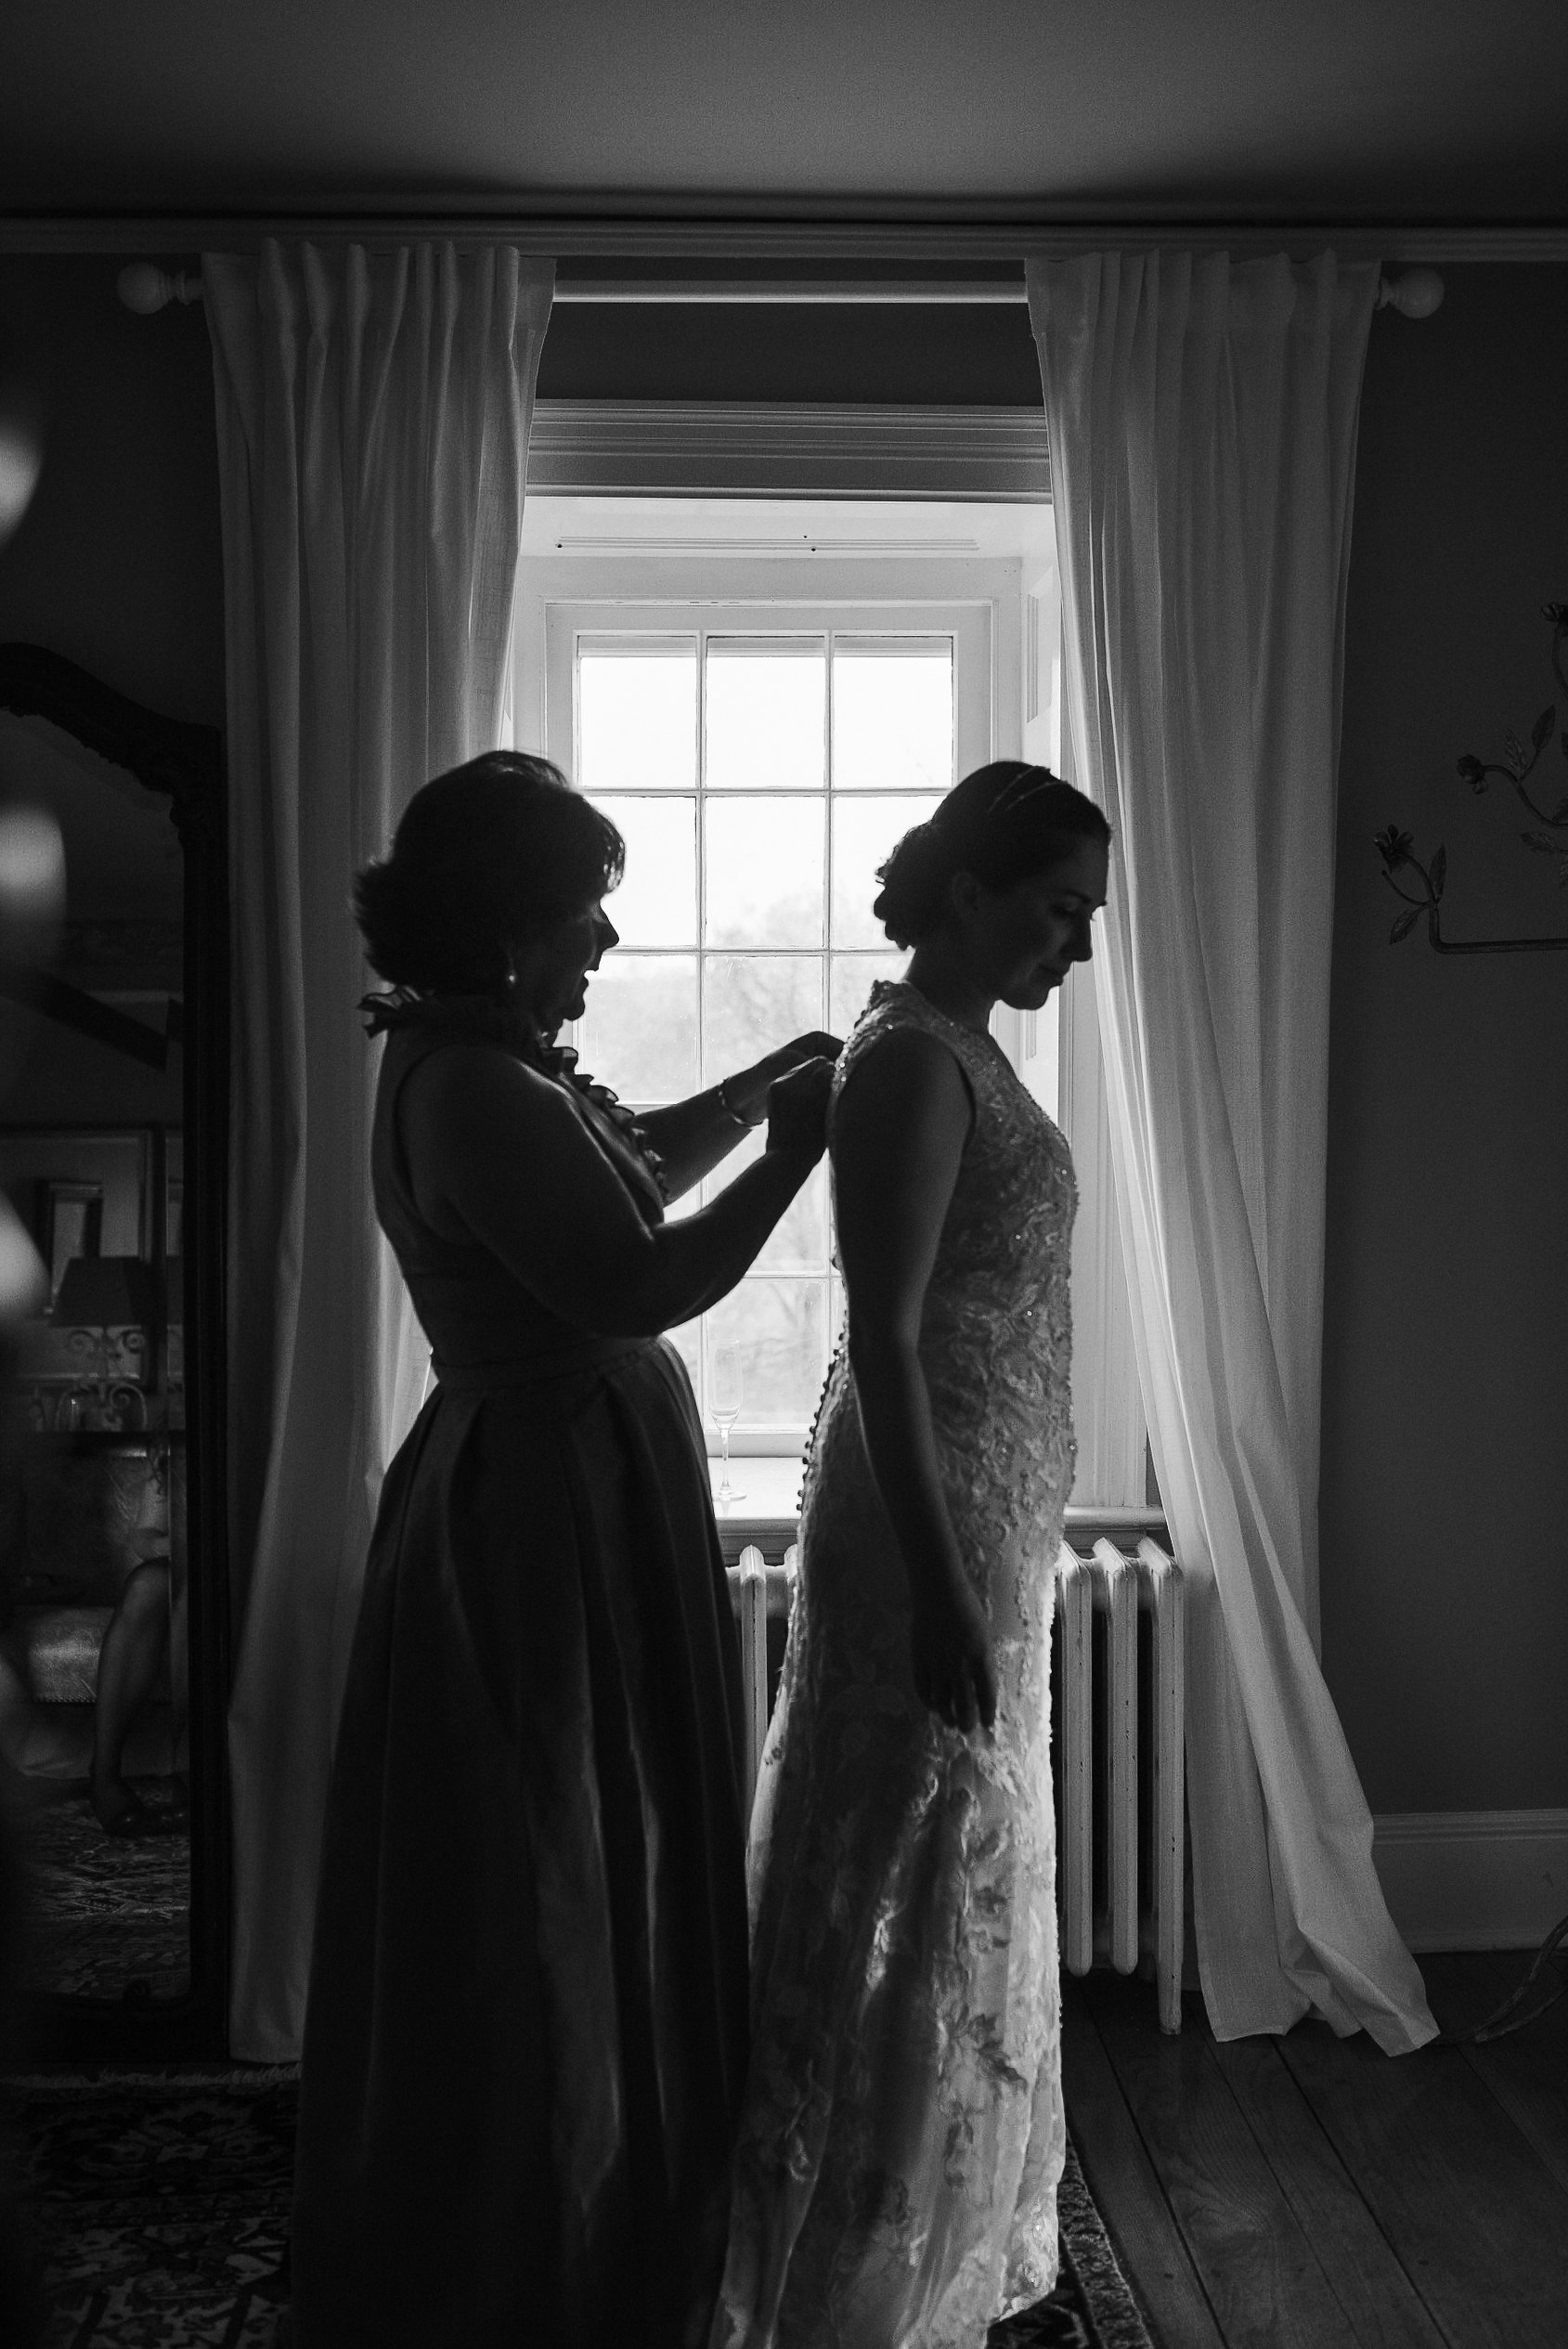 Mother zipping up bride's dress